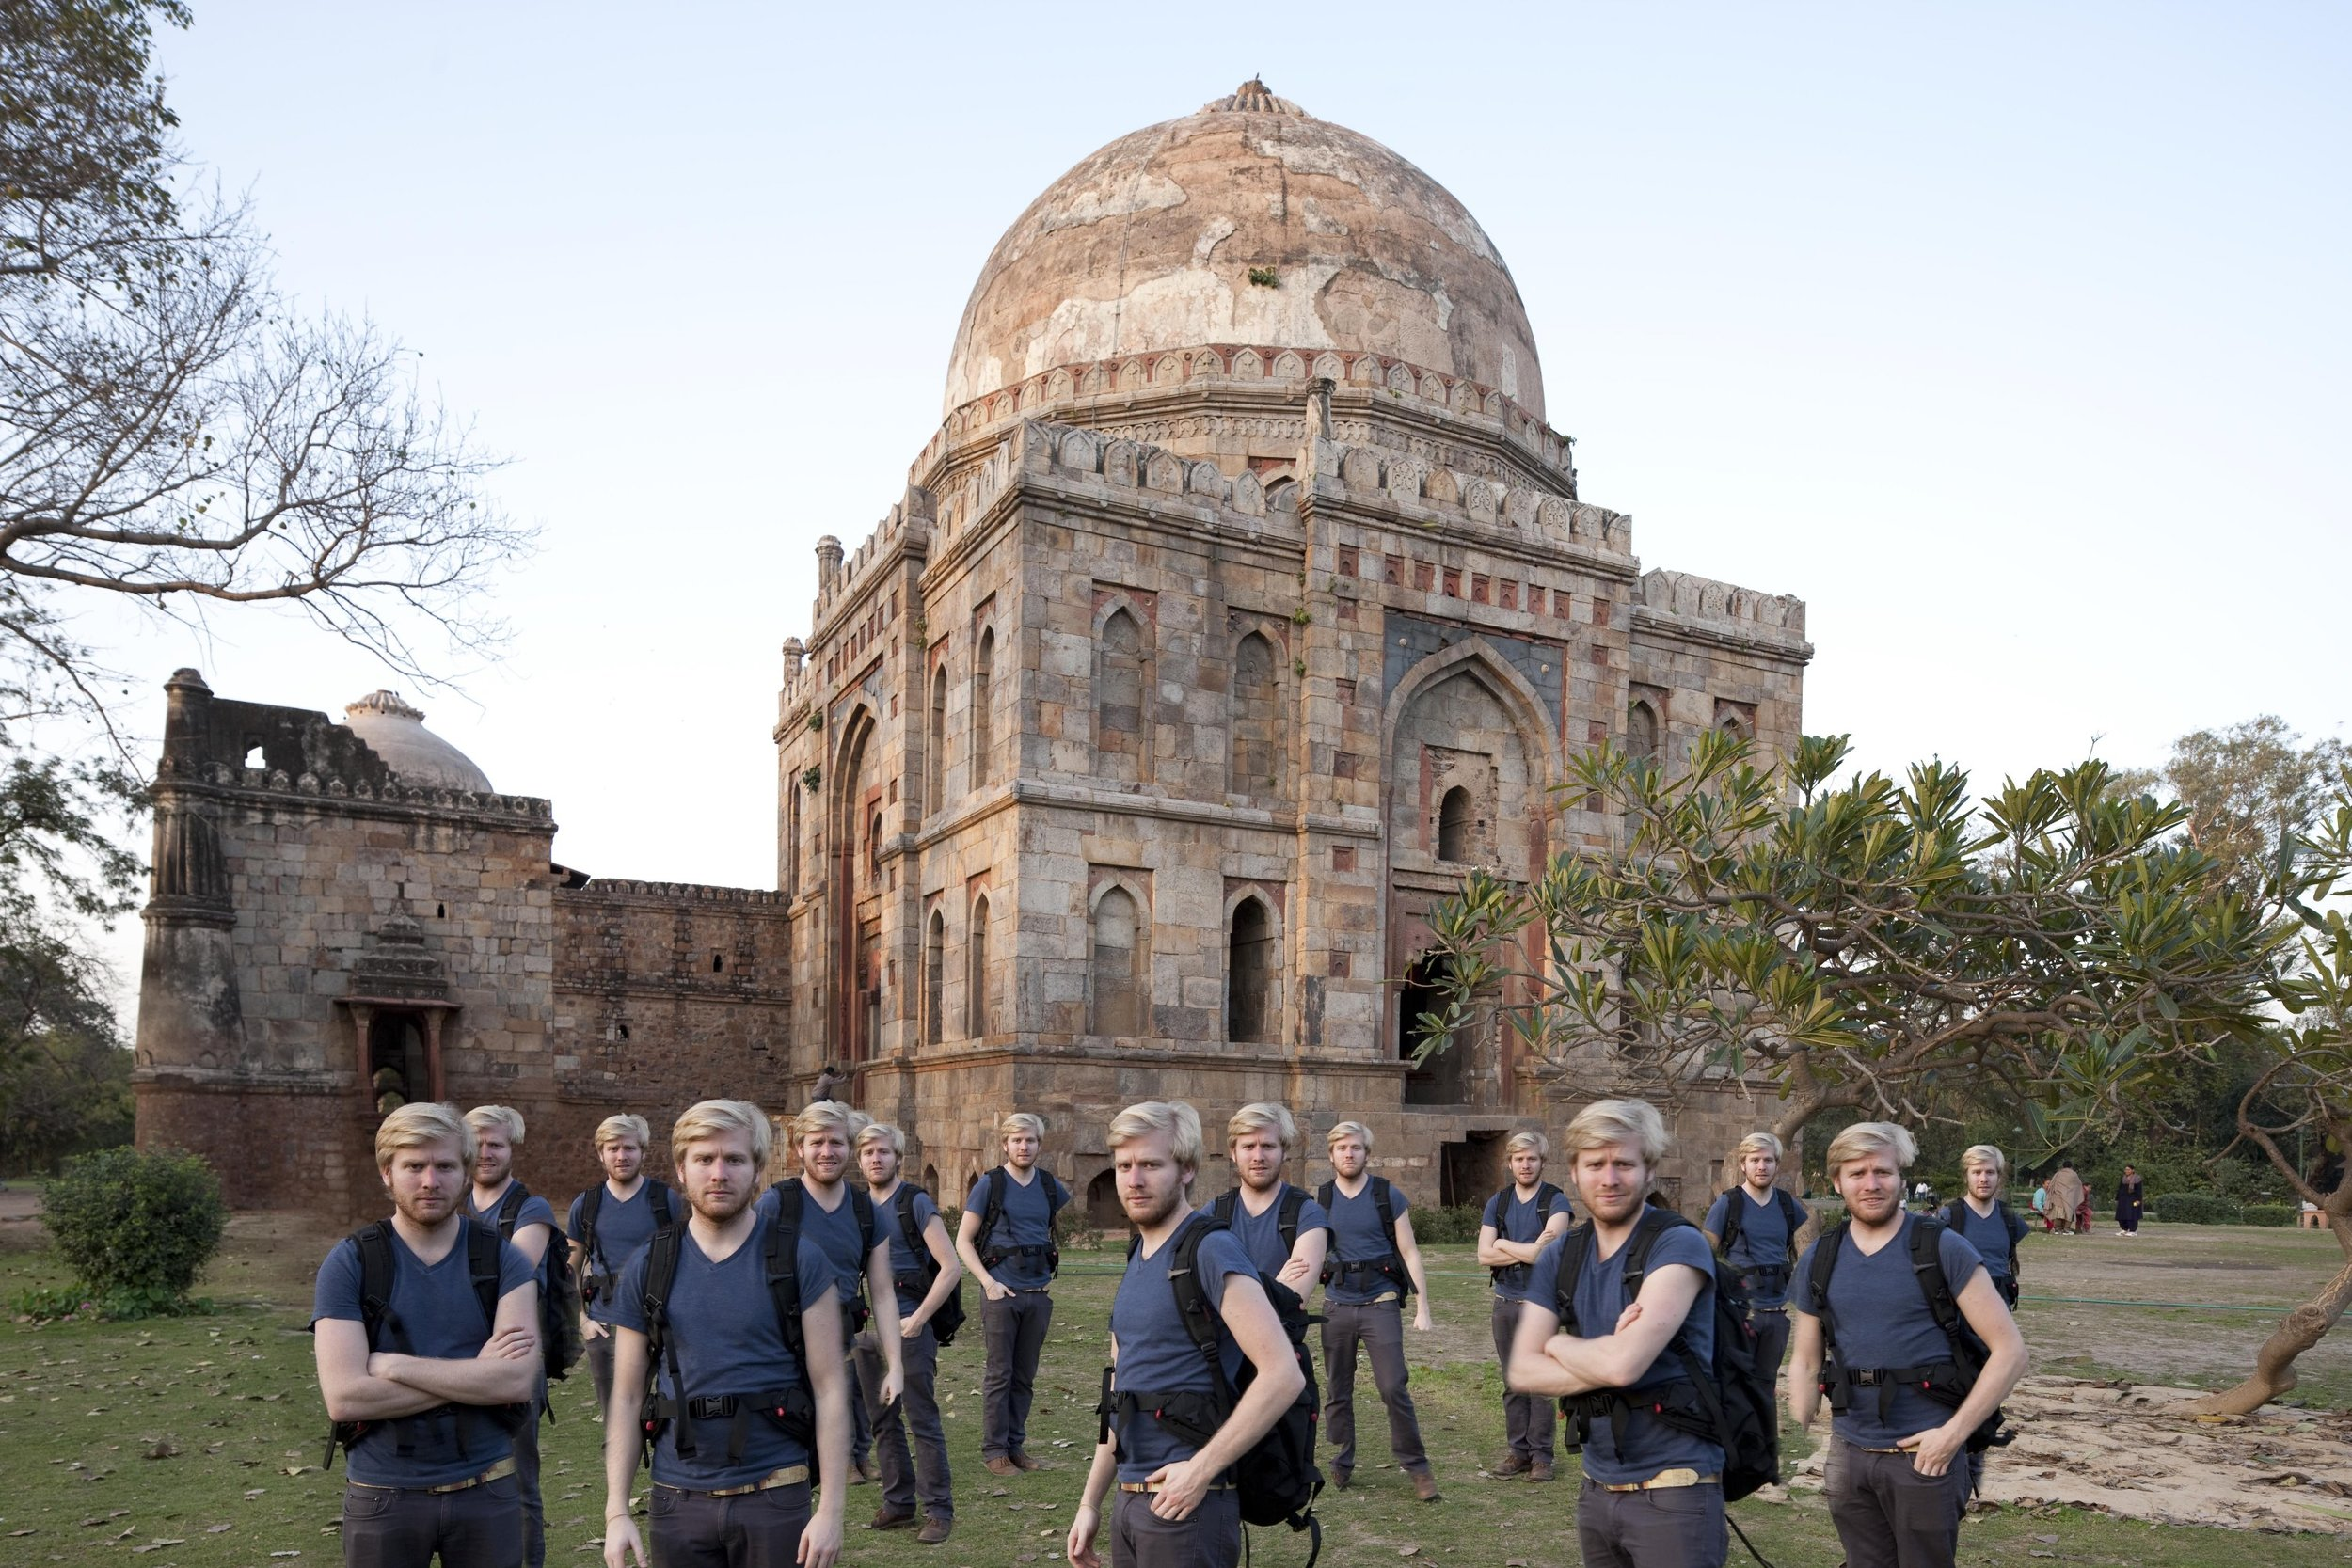 A temple in New Delhi was chosen as the backdrop for URS engineers. My assistant and I went to the location the day before the shoot to carefully plan out the positions of all our subjects, taking into account the direction and quality of the light at sunset. With only the two of us to rehearse the group portrait, my assistant stood in for each of the 15 anticipated subjects and then used Photoshop to combine the different positions.